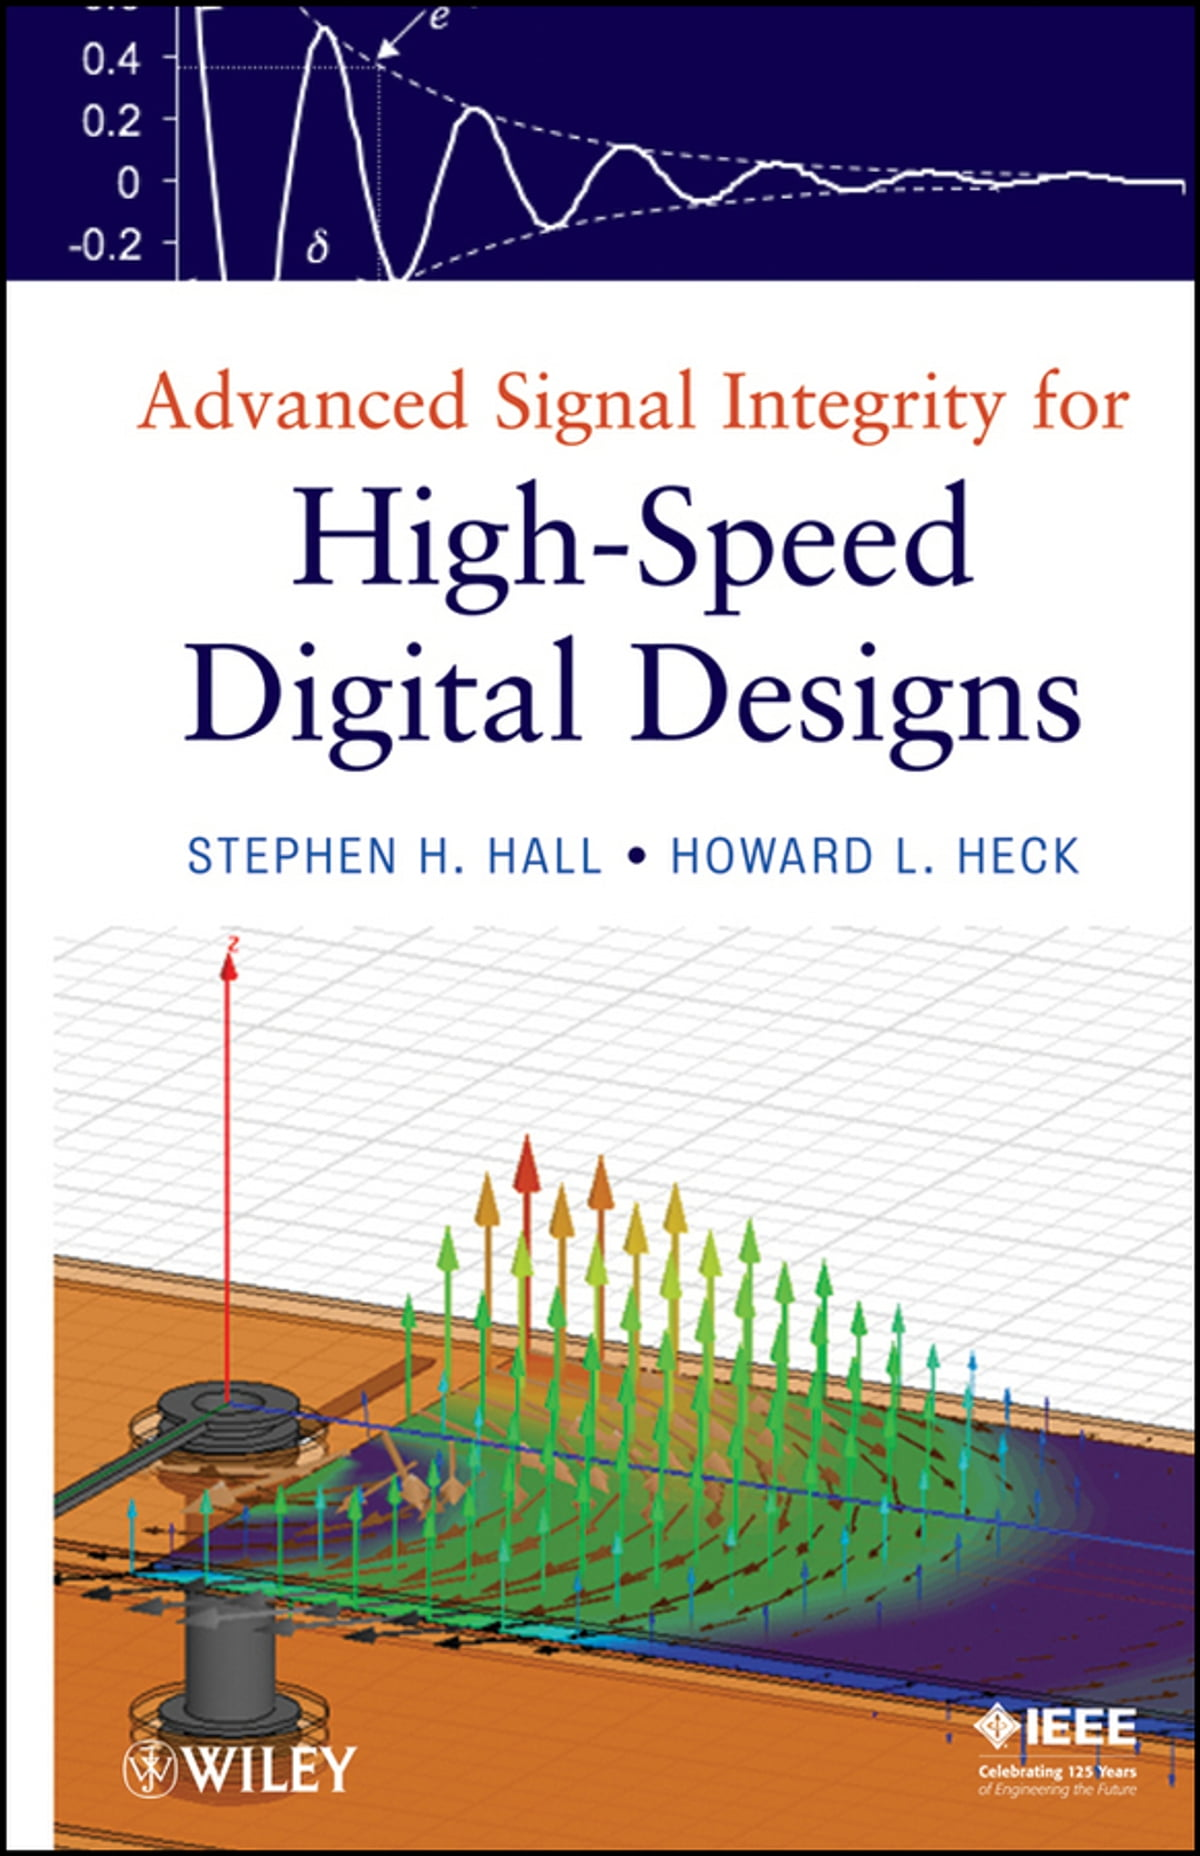 Advanced Signal Integrity for High-Speed Digital Designs eBook by Stephen  H. Hall - 9781118210680 | Rakuten Kobo